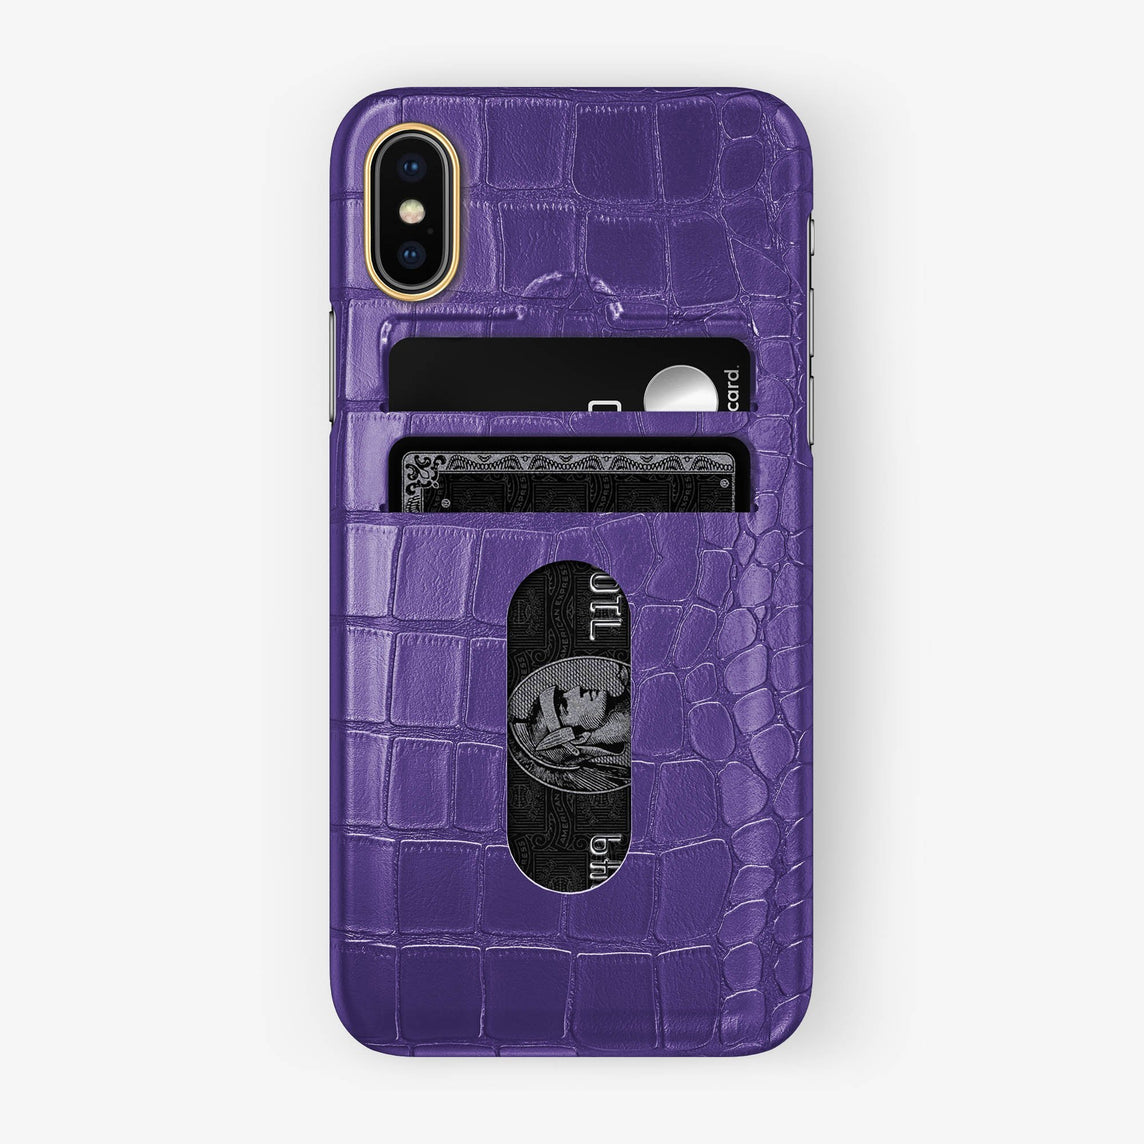 Alligator [iPhone Card Holder Case] [model:iphone-x-case] [colour:purple] [finishing:yellow-gold] - Hadoro